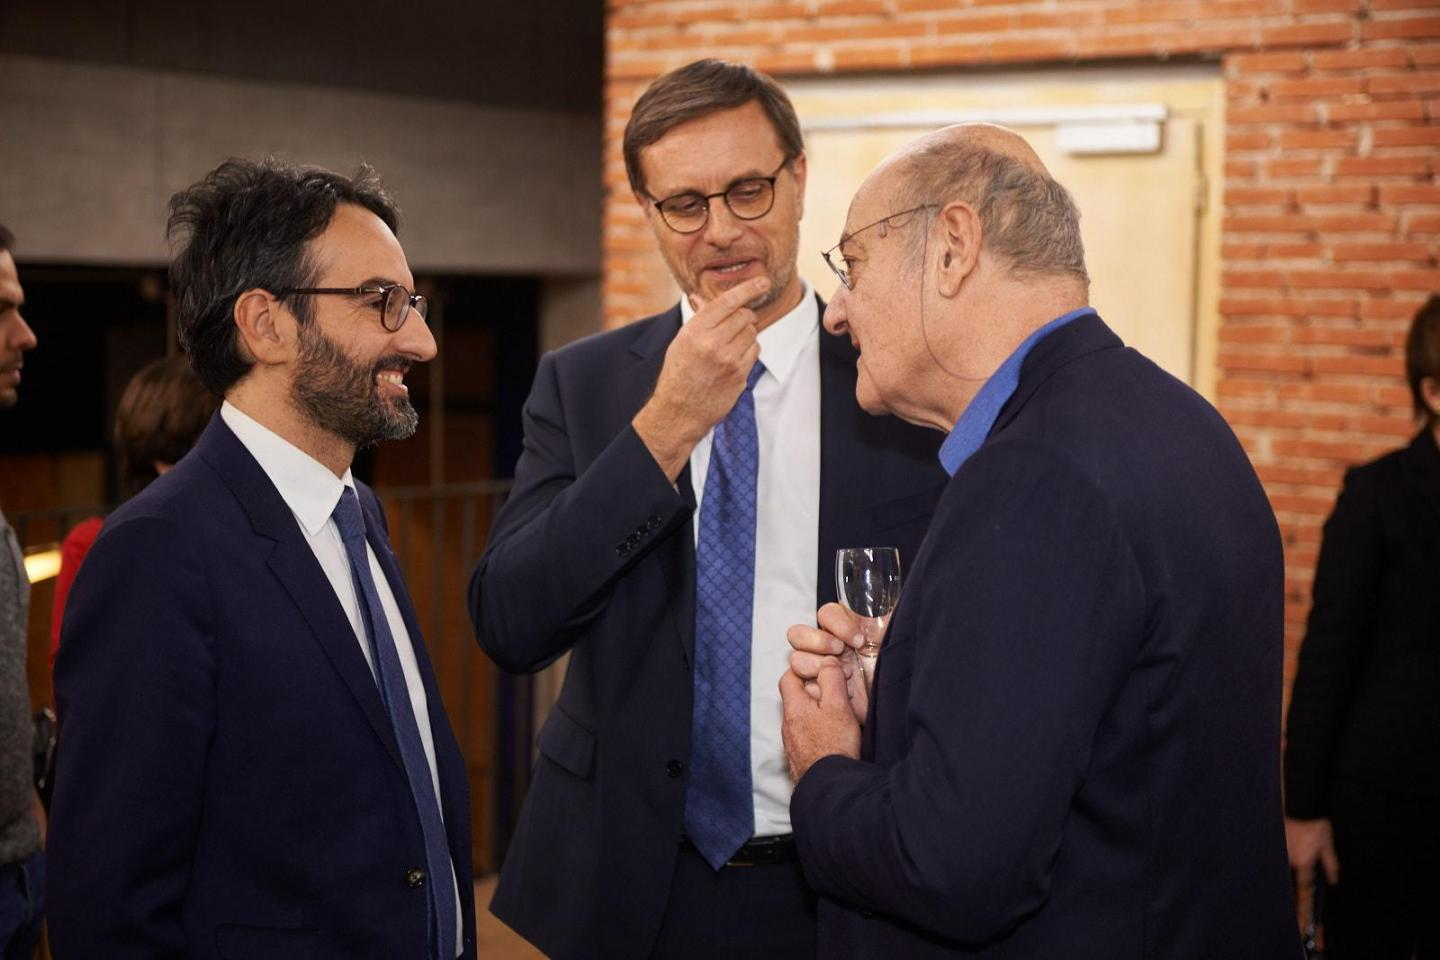 From left, the chairman of the City Council of Milan Lamberto Bertolè, the Consul General of France in Milan Olivier Brochet and the president of Gariwo Gabriele Nissim